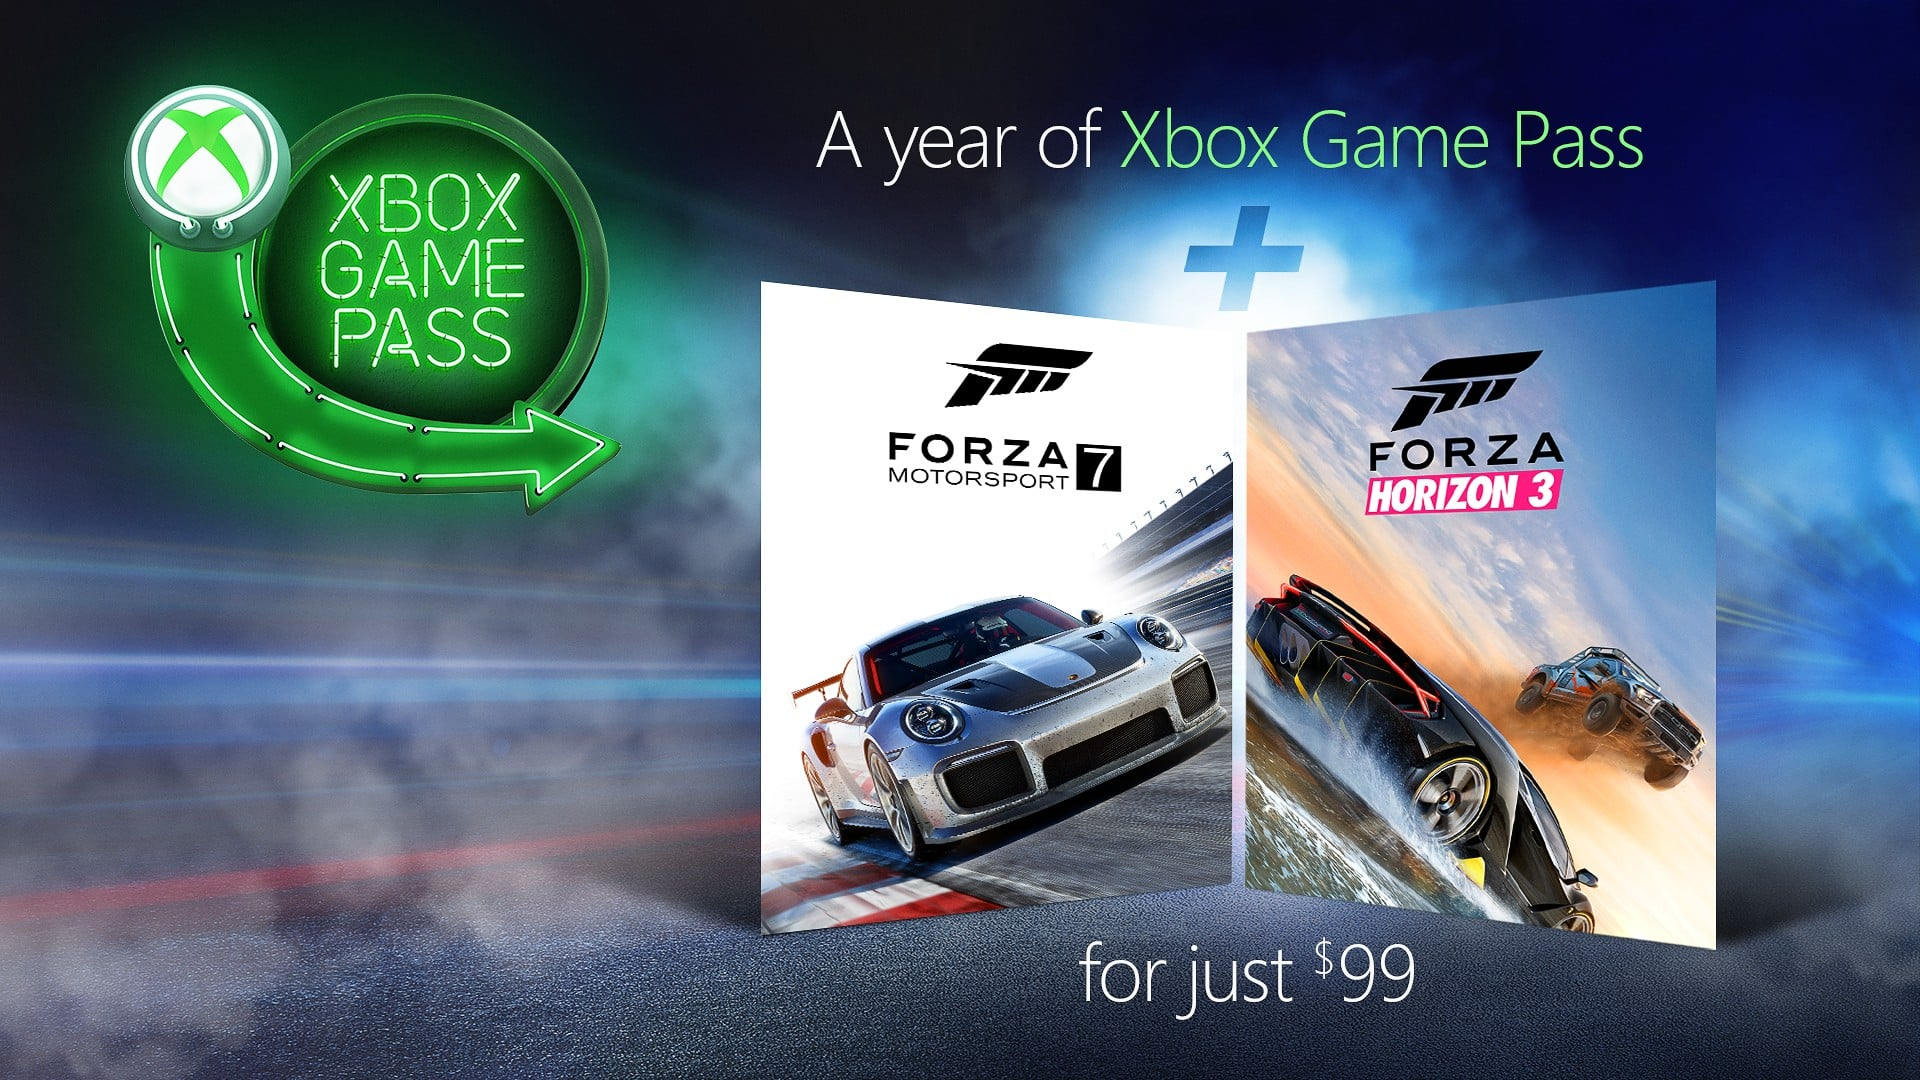 Forza Xbox Game Pass deal